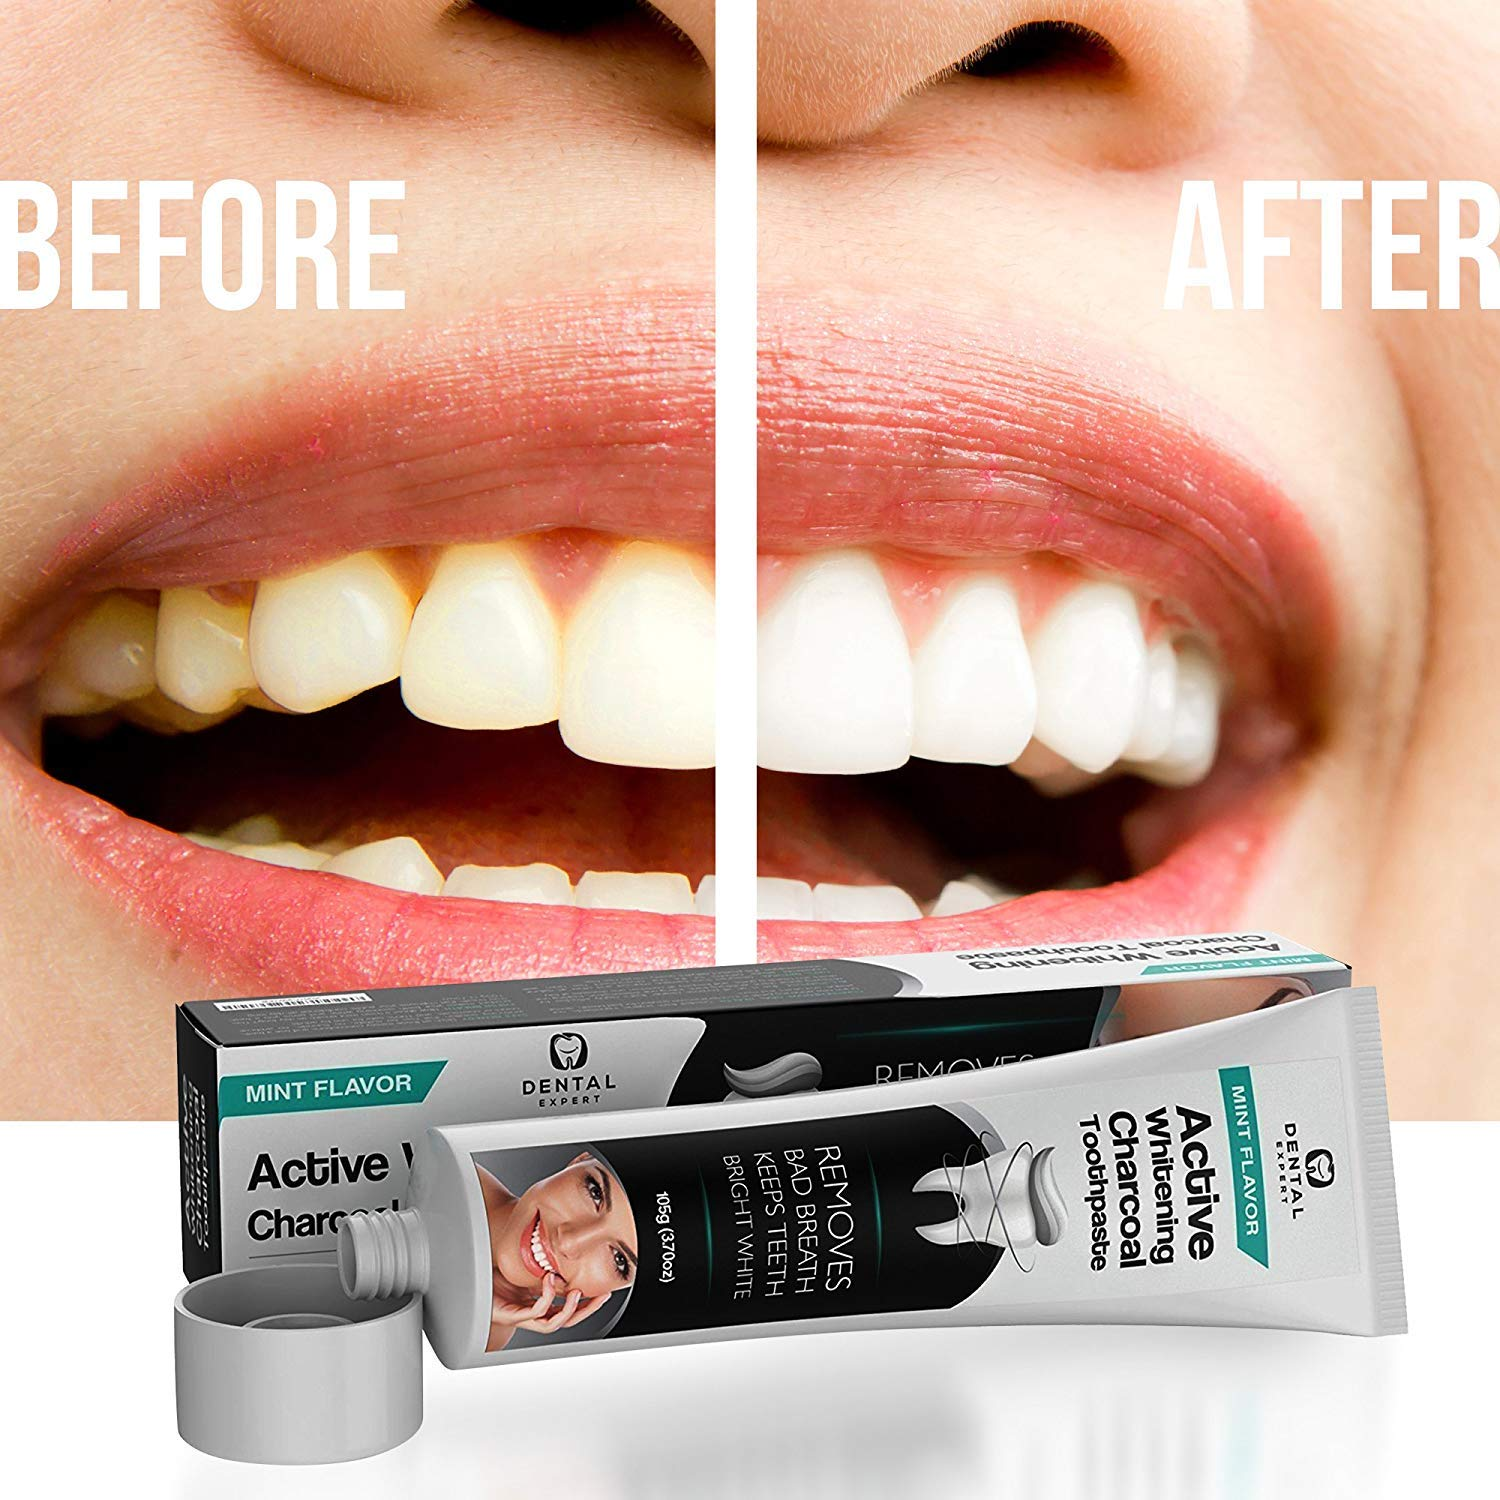 Is Charcoal Toothpaste the Answer to Whiter Teeth recommendations